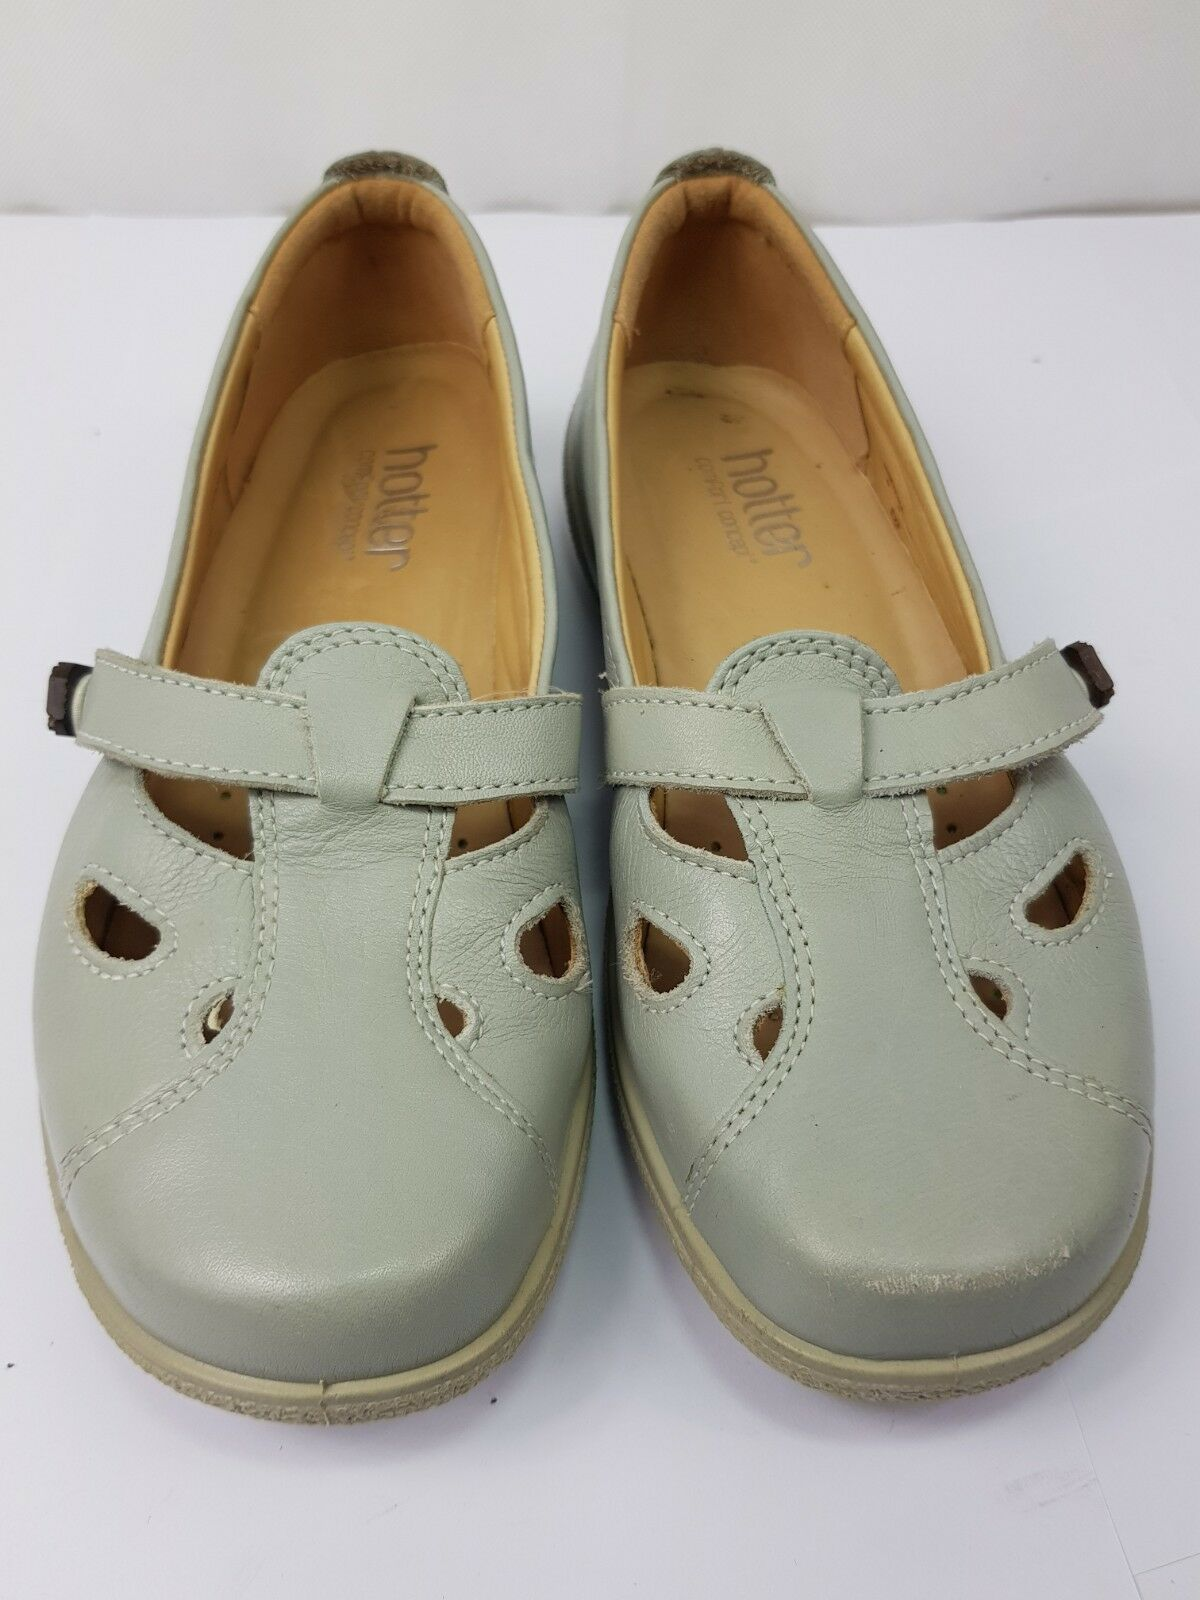 HOTTER Comfort Concept Strapped Pale Grey shoes UK 4 - Pre-worn. VGC